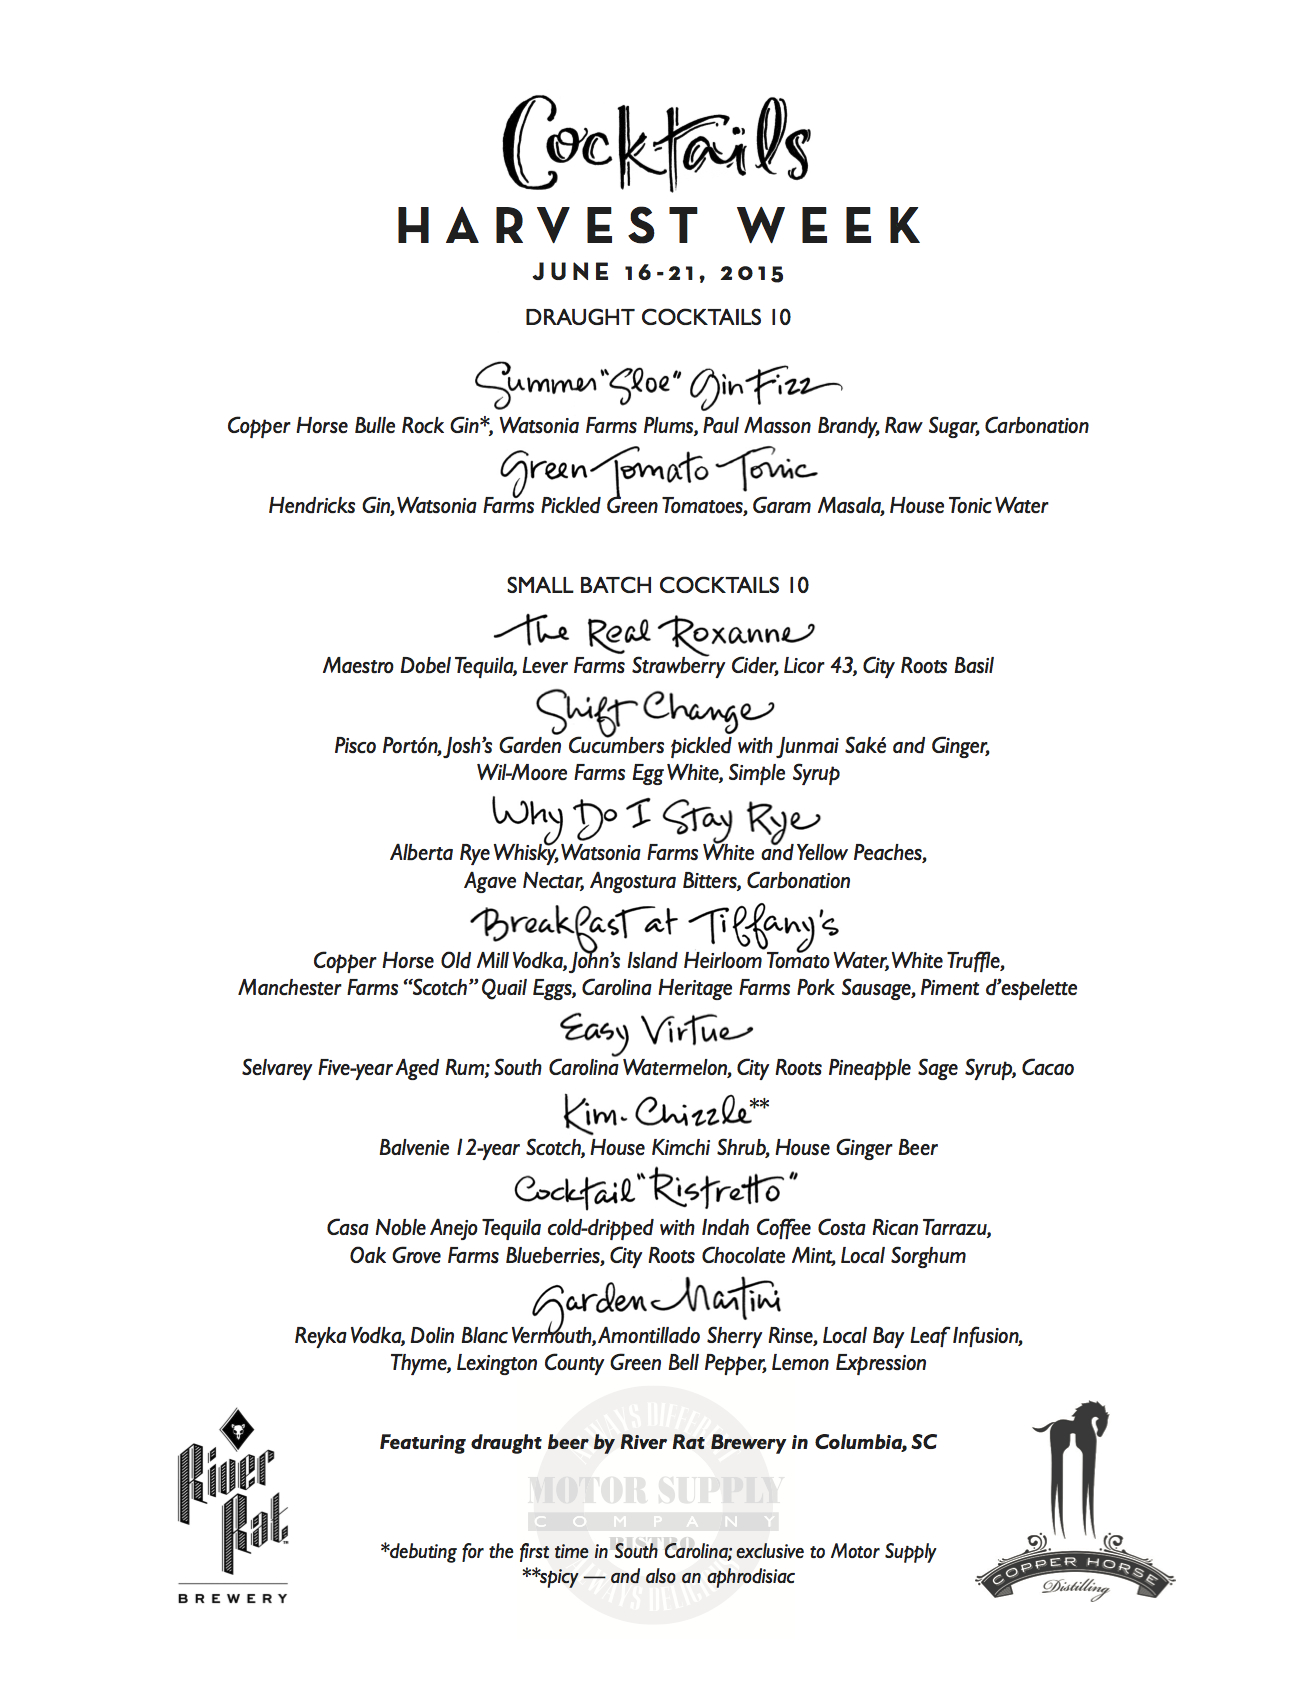 Motor Supply - Harvest Week 2015 Cocktail Menu